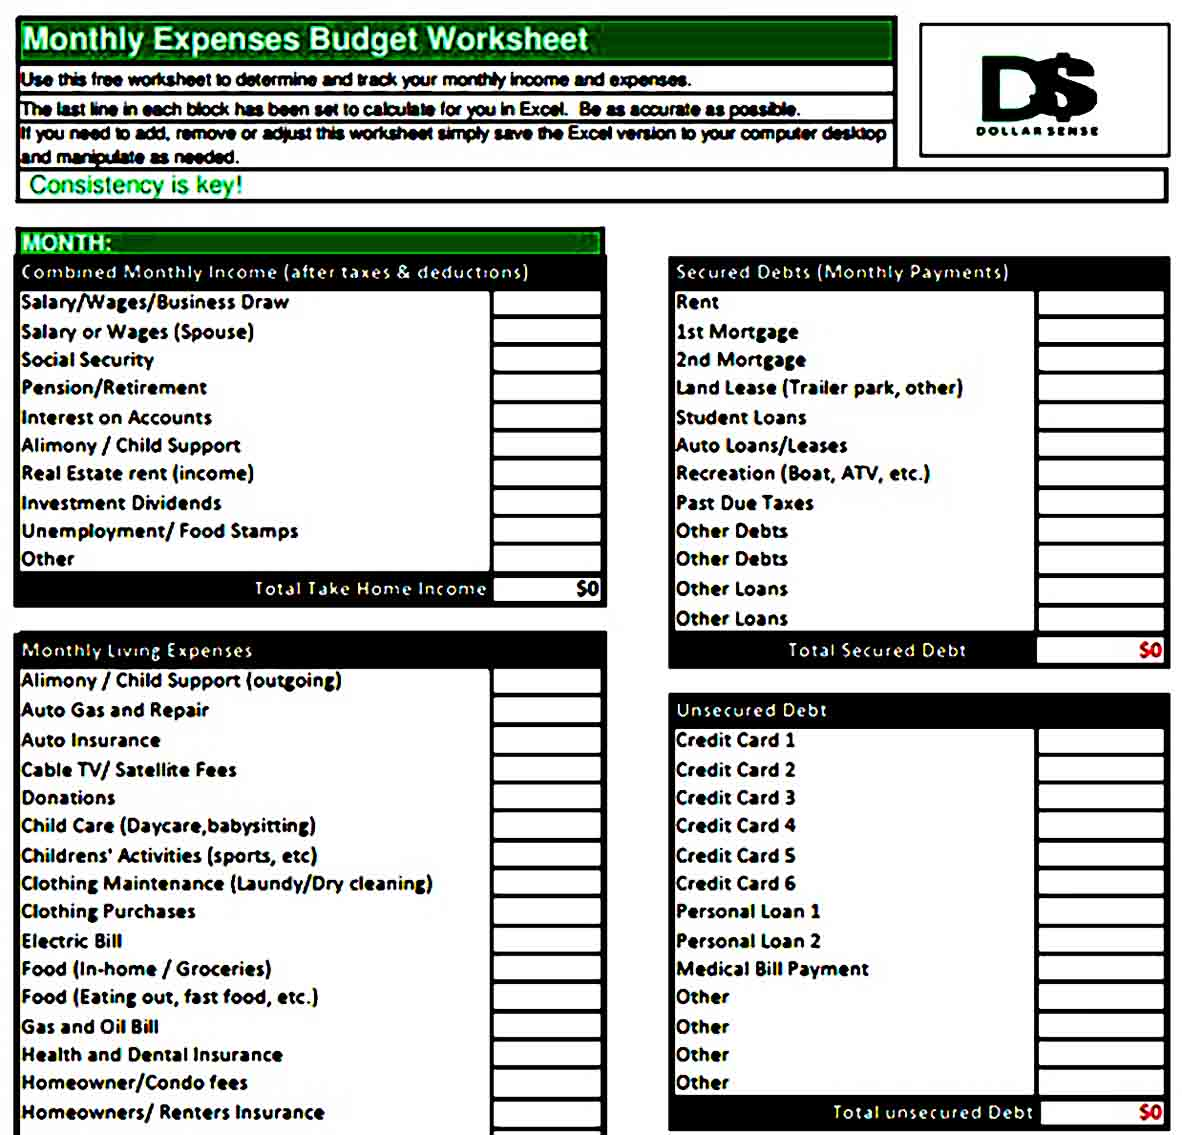 Monthly Expenses Budget Worksheet